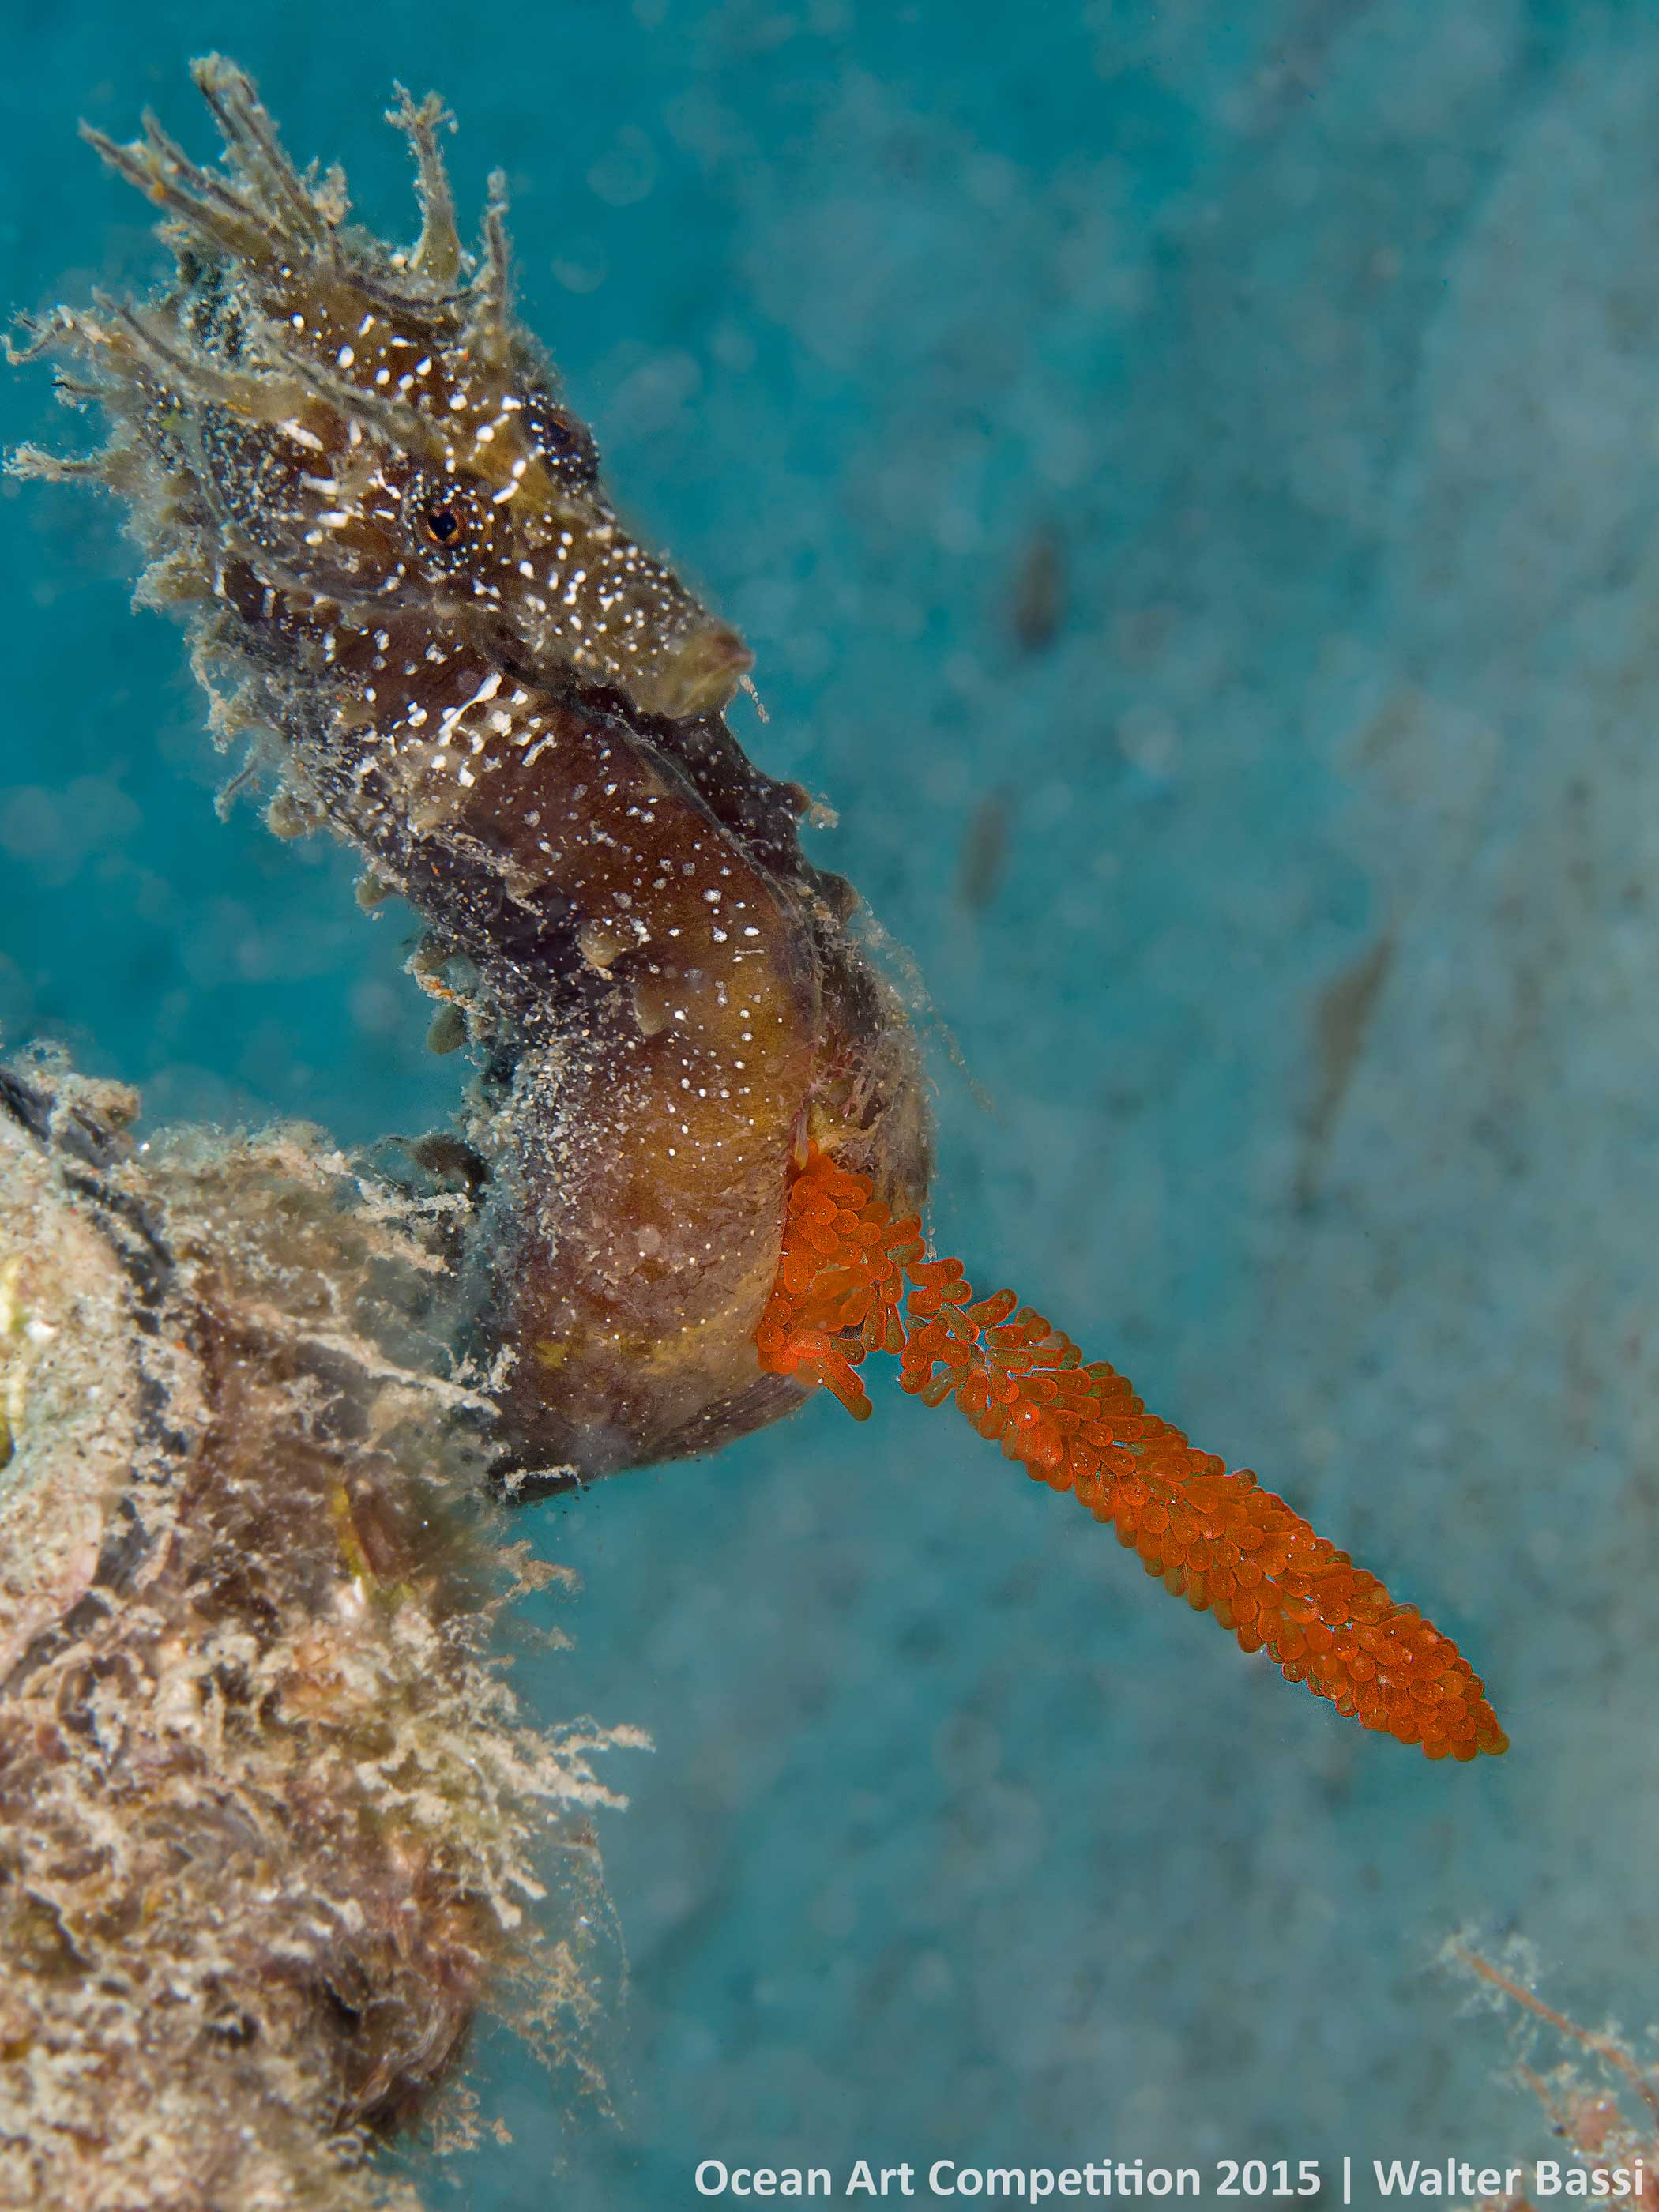 In my dive I saw the whole sequence of mating between male and female, like a dance in the blue, so much emotion. When you split a portion of eggs is left out of the belly of the male, the situation is very rare and unique. This picture was taken while the horse tries to retrieve the eggs.Fortunately he recovered completely. The main difficulty for me was not to bother the horse in order not to lose the eggs.  - Walter Bassi